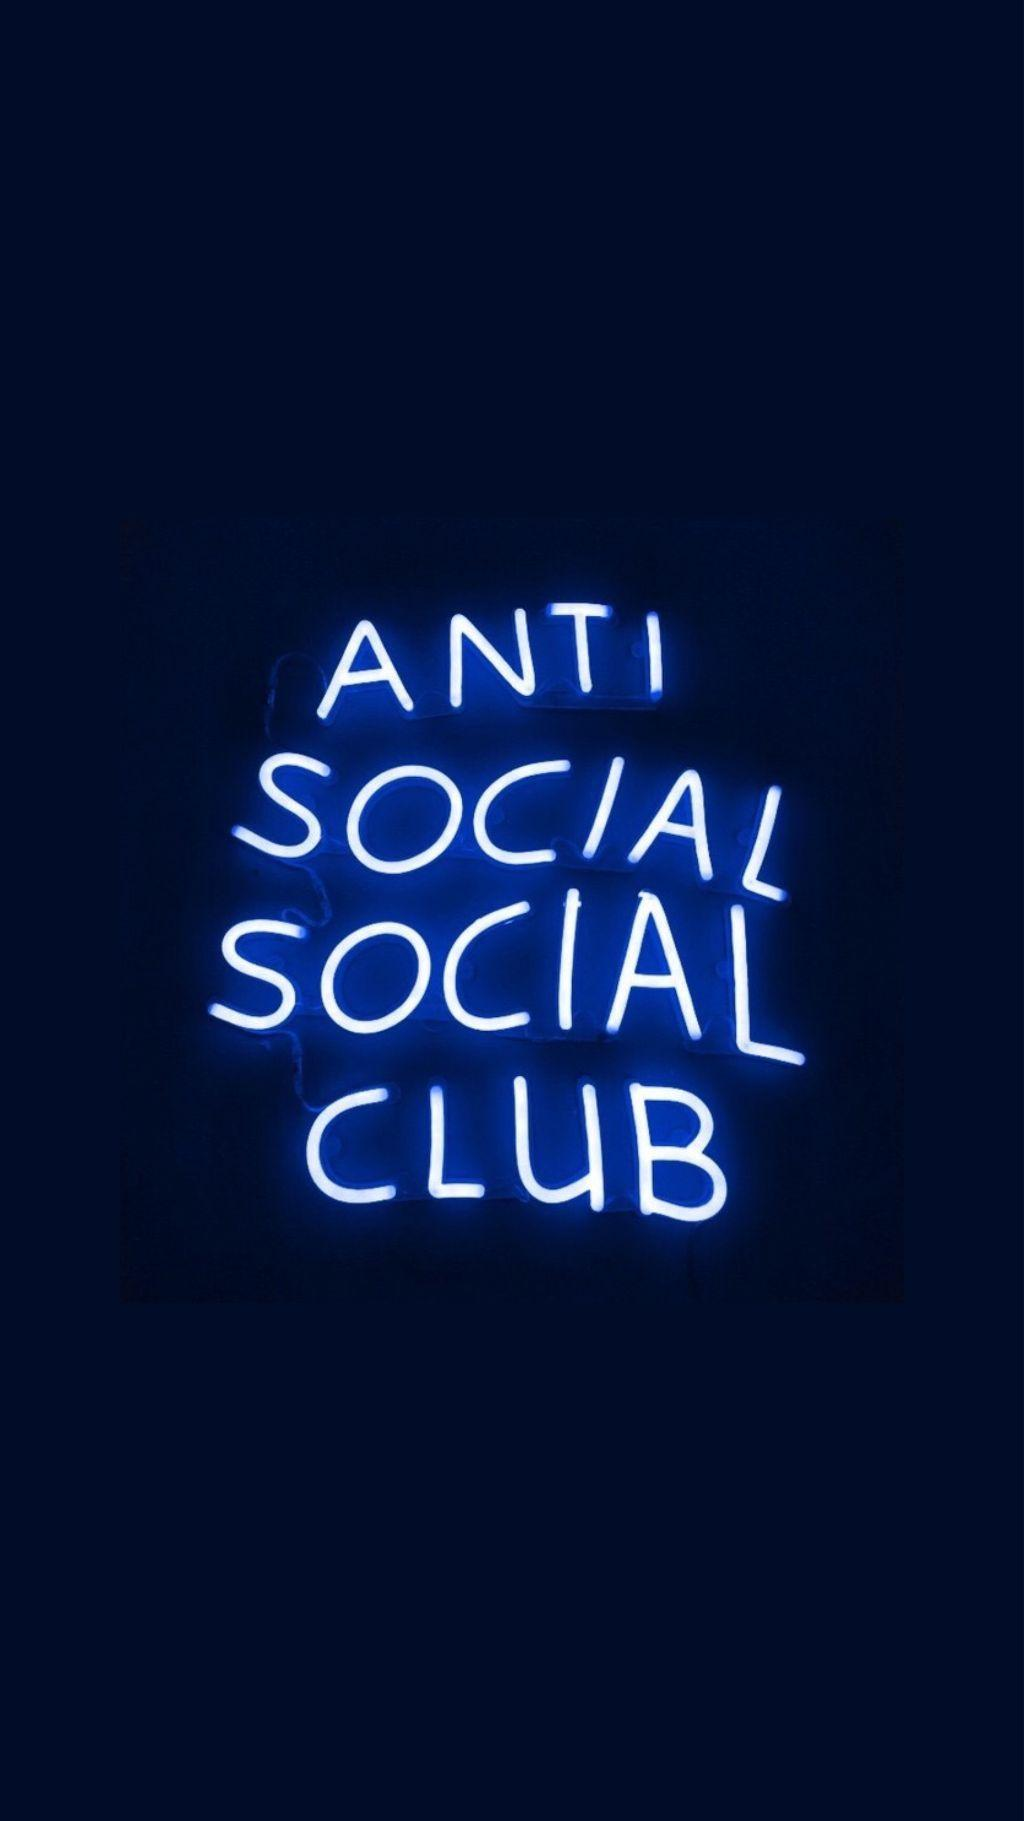 How to Use AntiSocialWallpaper